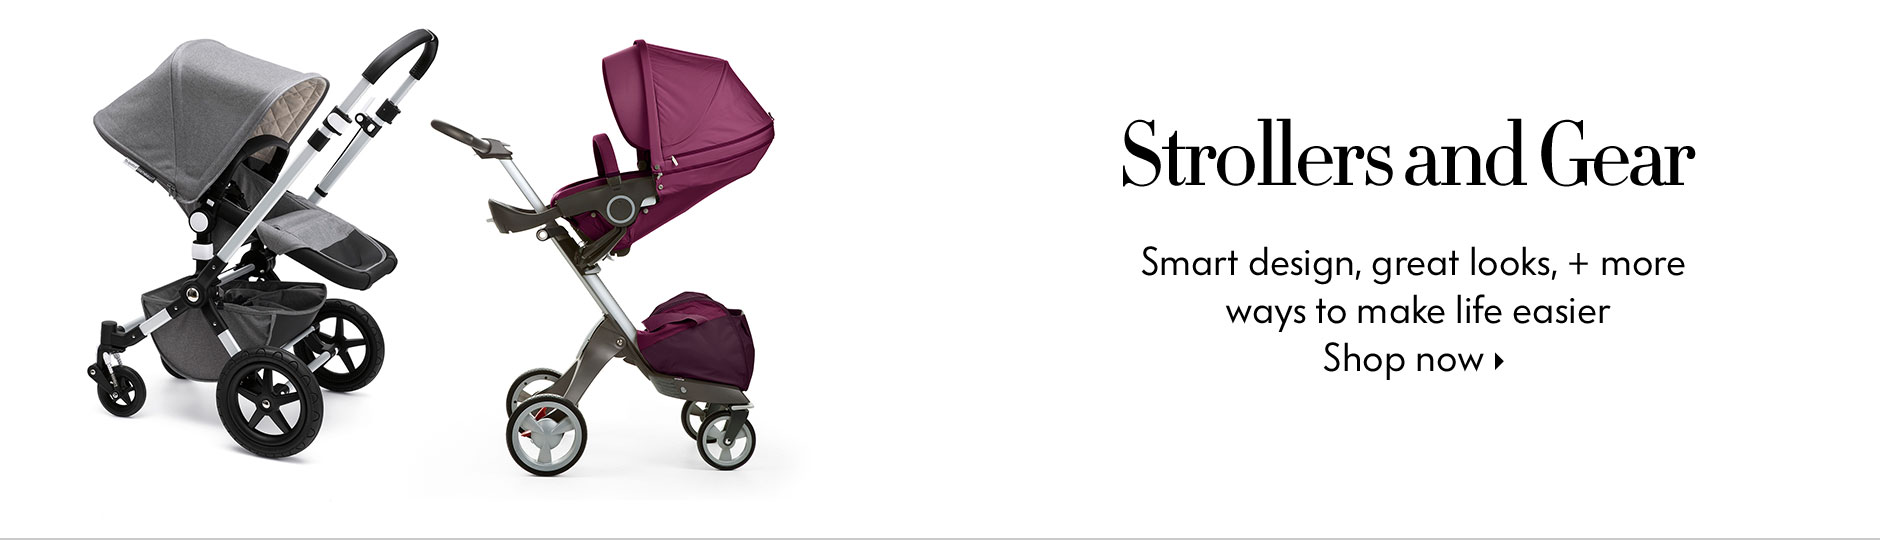 NM Kids: Smart design, great looks, + more ways to make life easier - Shop Strollers and Gear